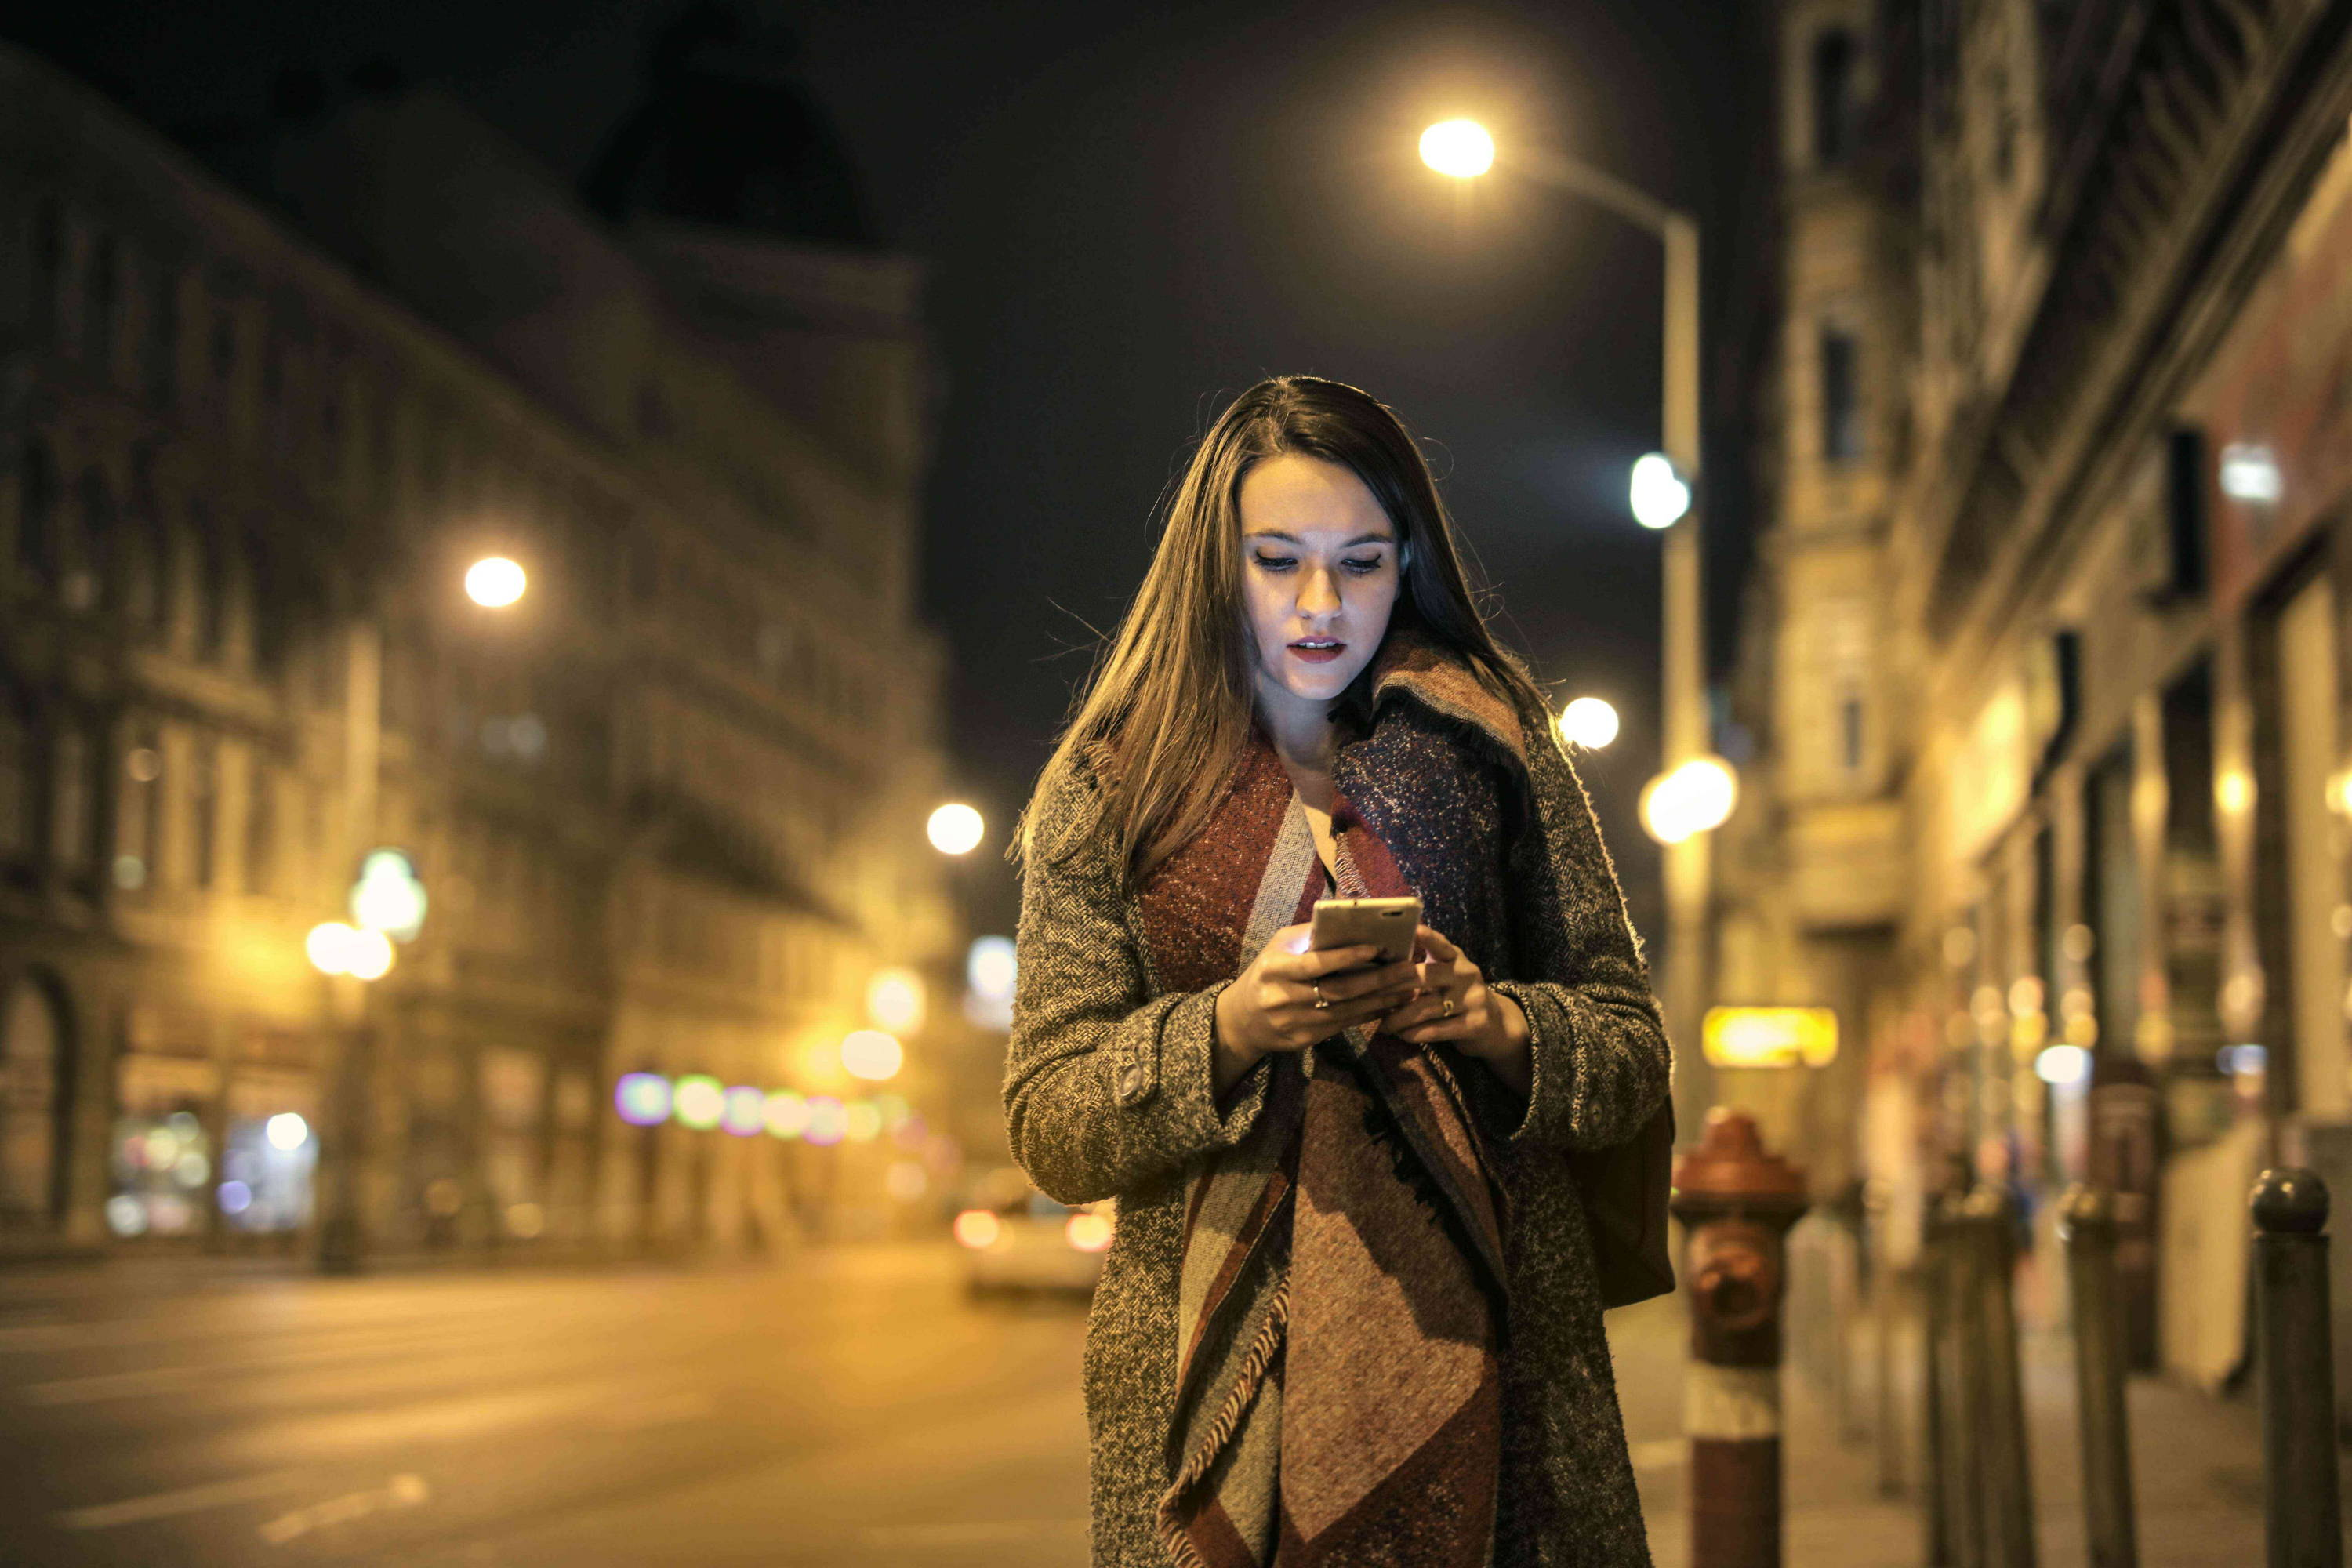 Woman using her phone walking alone at night in a busy city, staying safe as woman in the UK